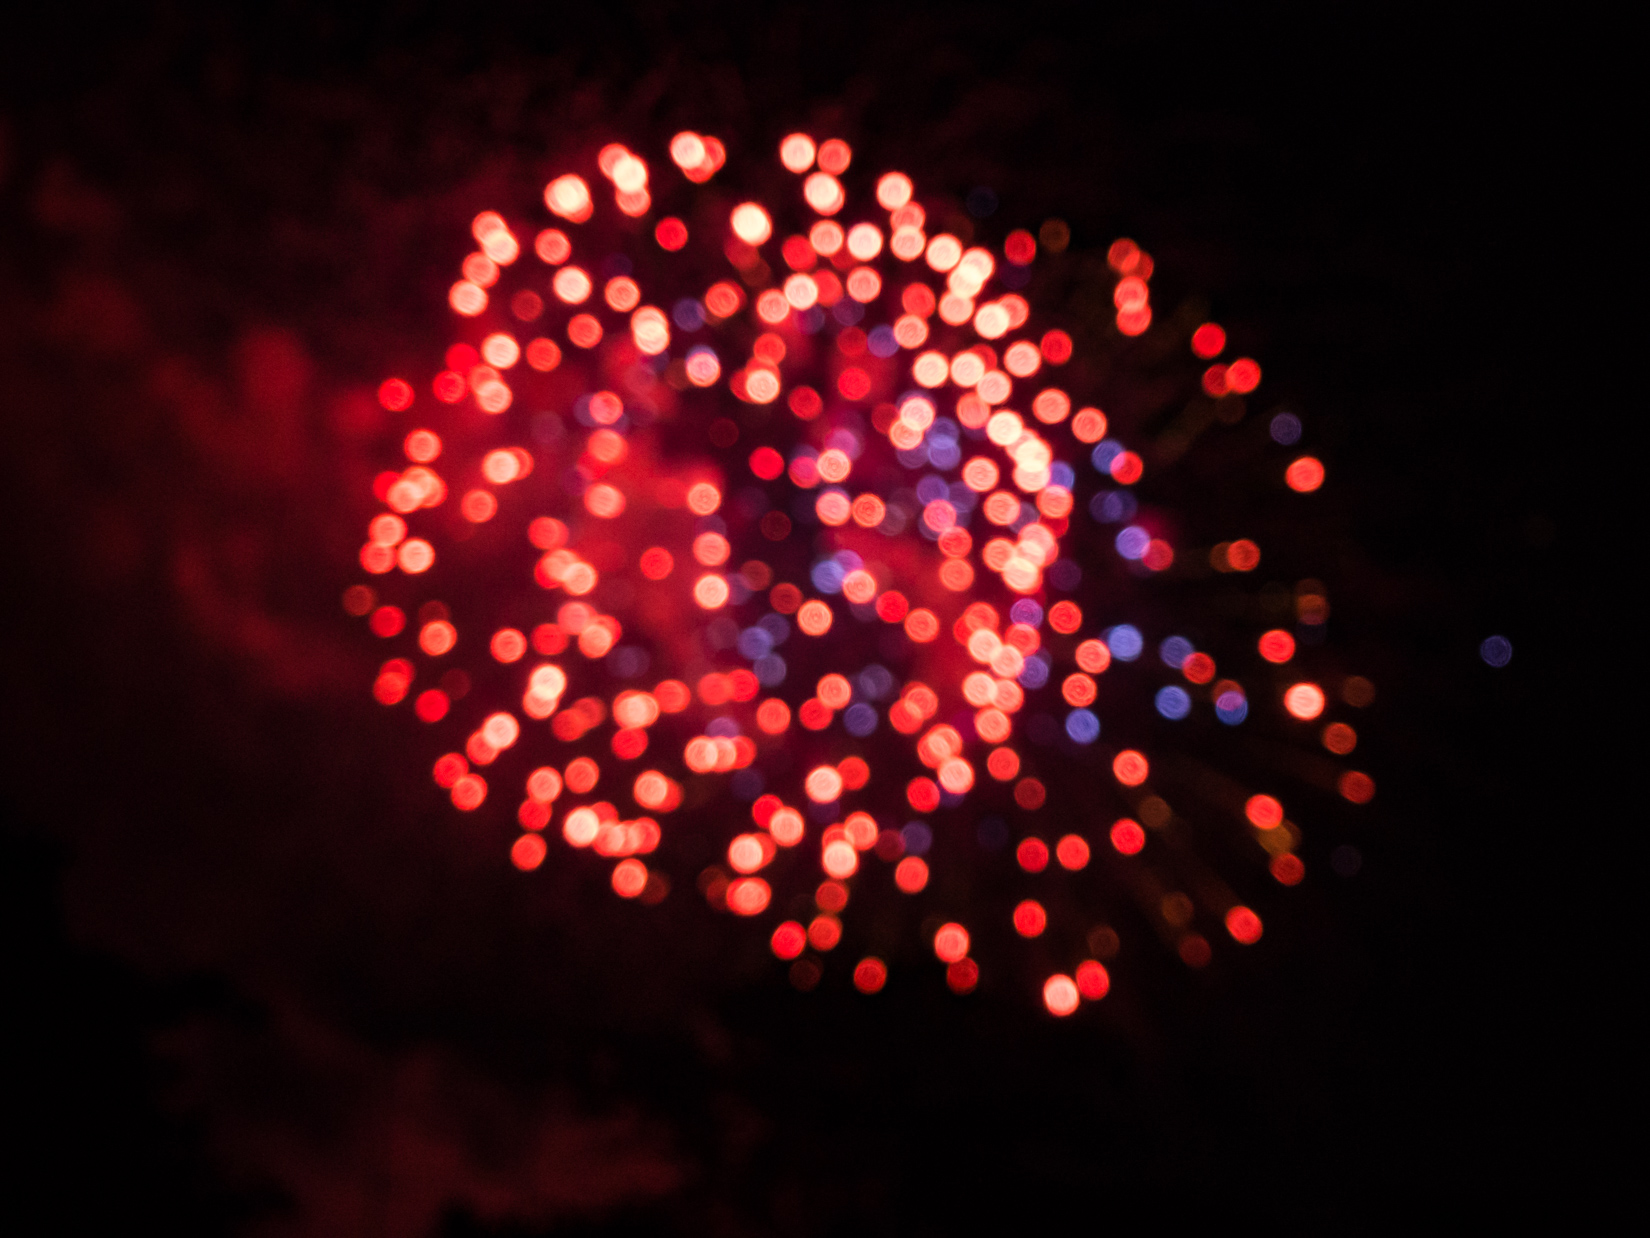 Blurred Fireworks